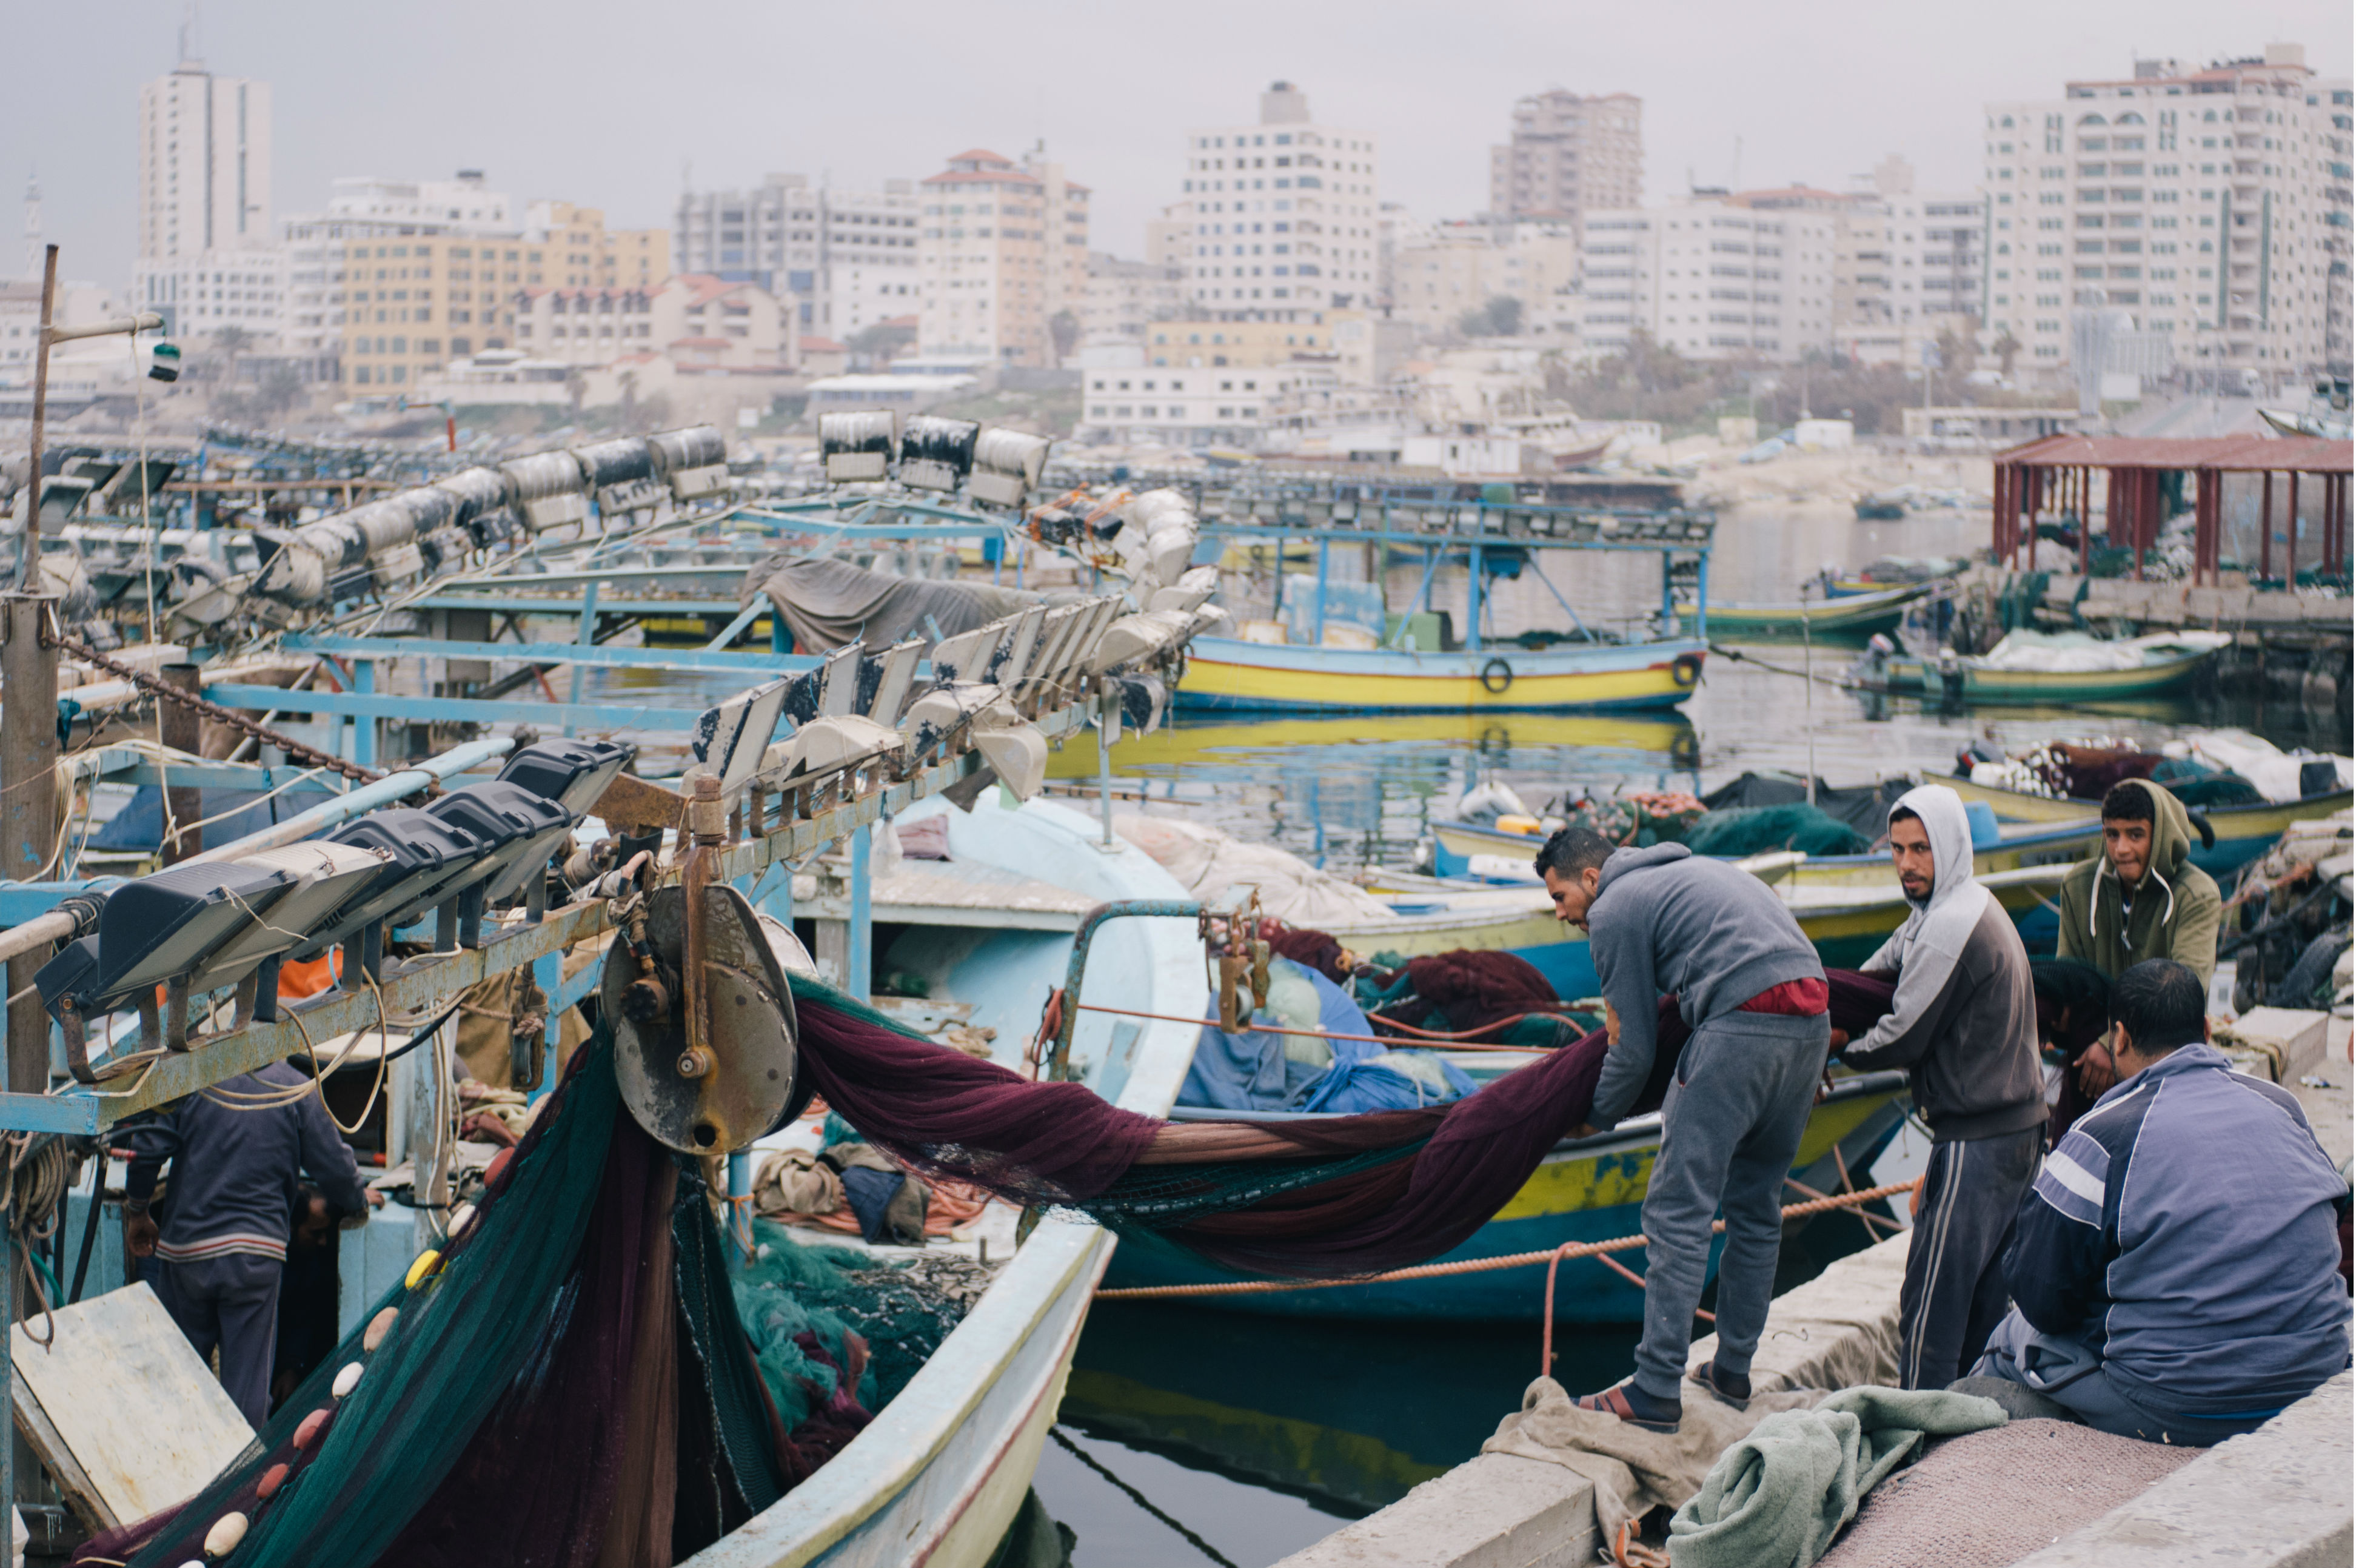 In the morning, when the air is still heavy with moisture, fishermen board small trawlers and set out from Gaza City's port to search for a catch within the six nautical miles that Israel allows them to fish